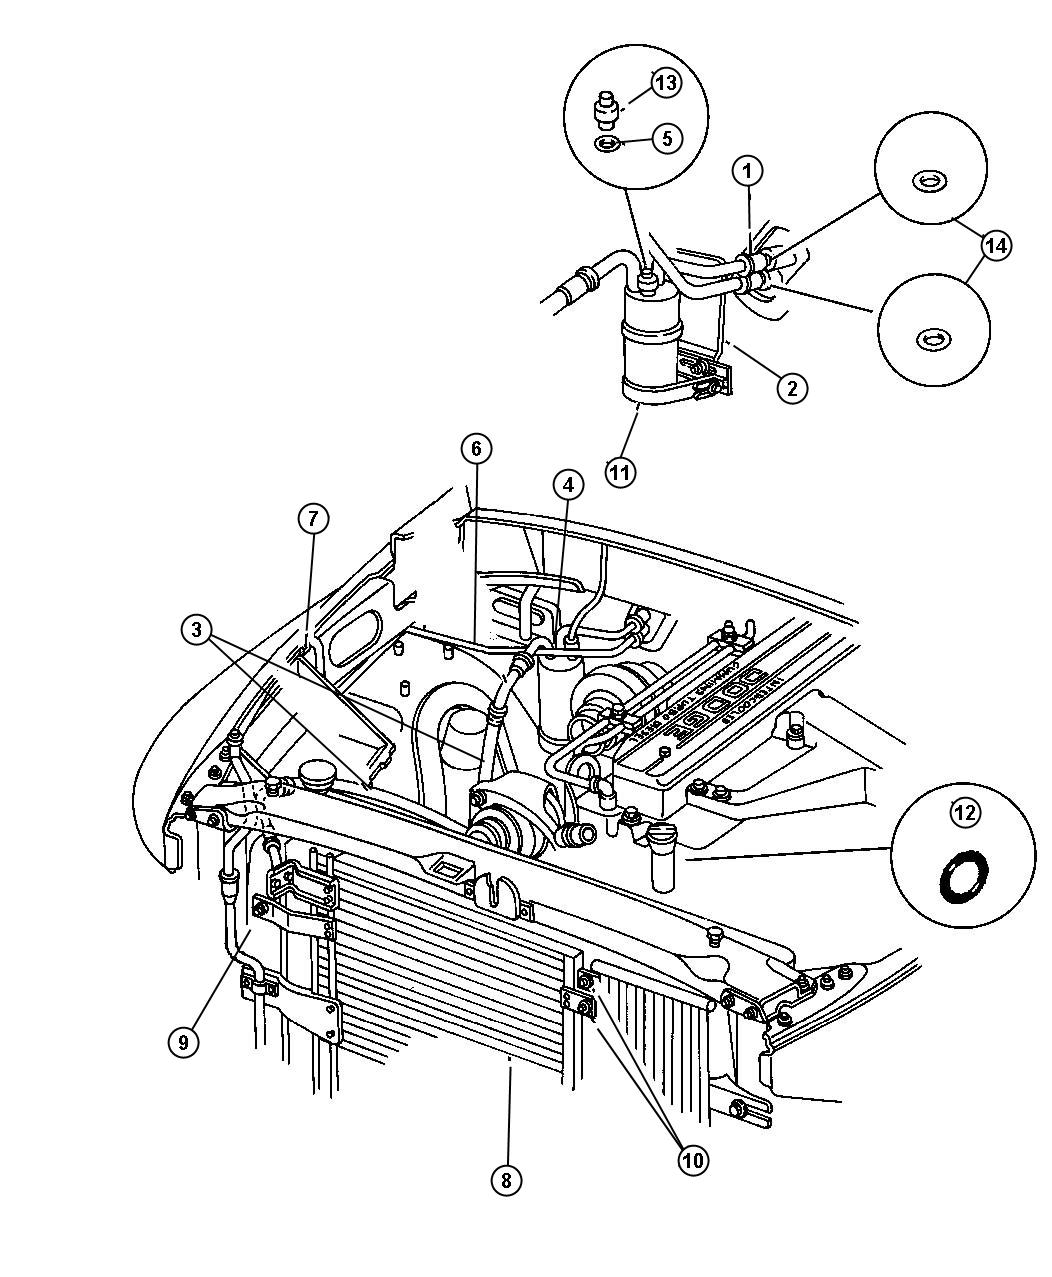 Pa System Wiring Diagram Besides Rockford Fosgate T1 12 Likewise